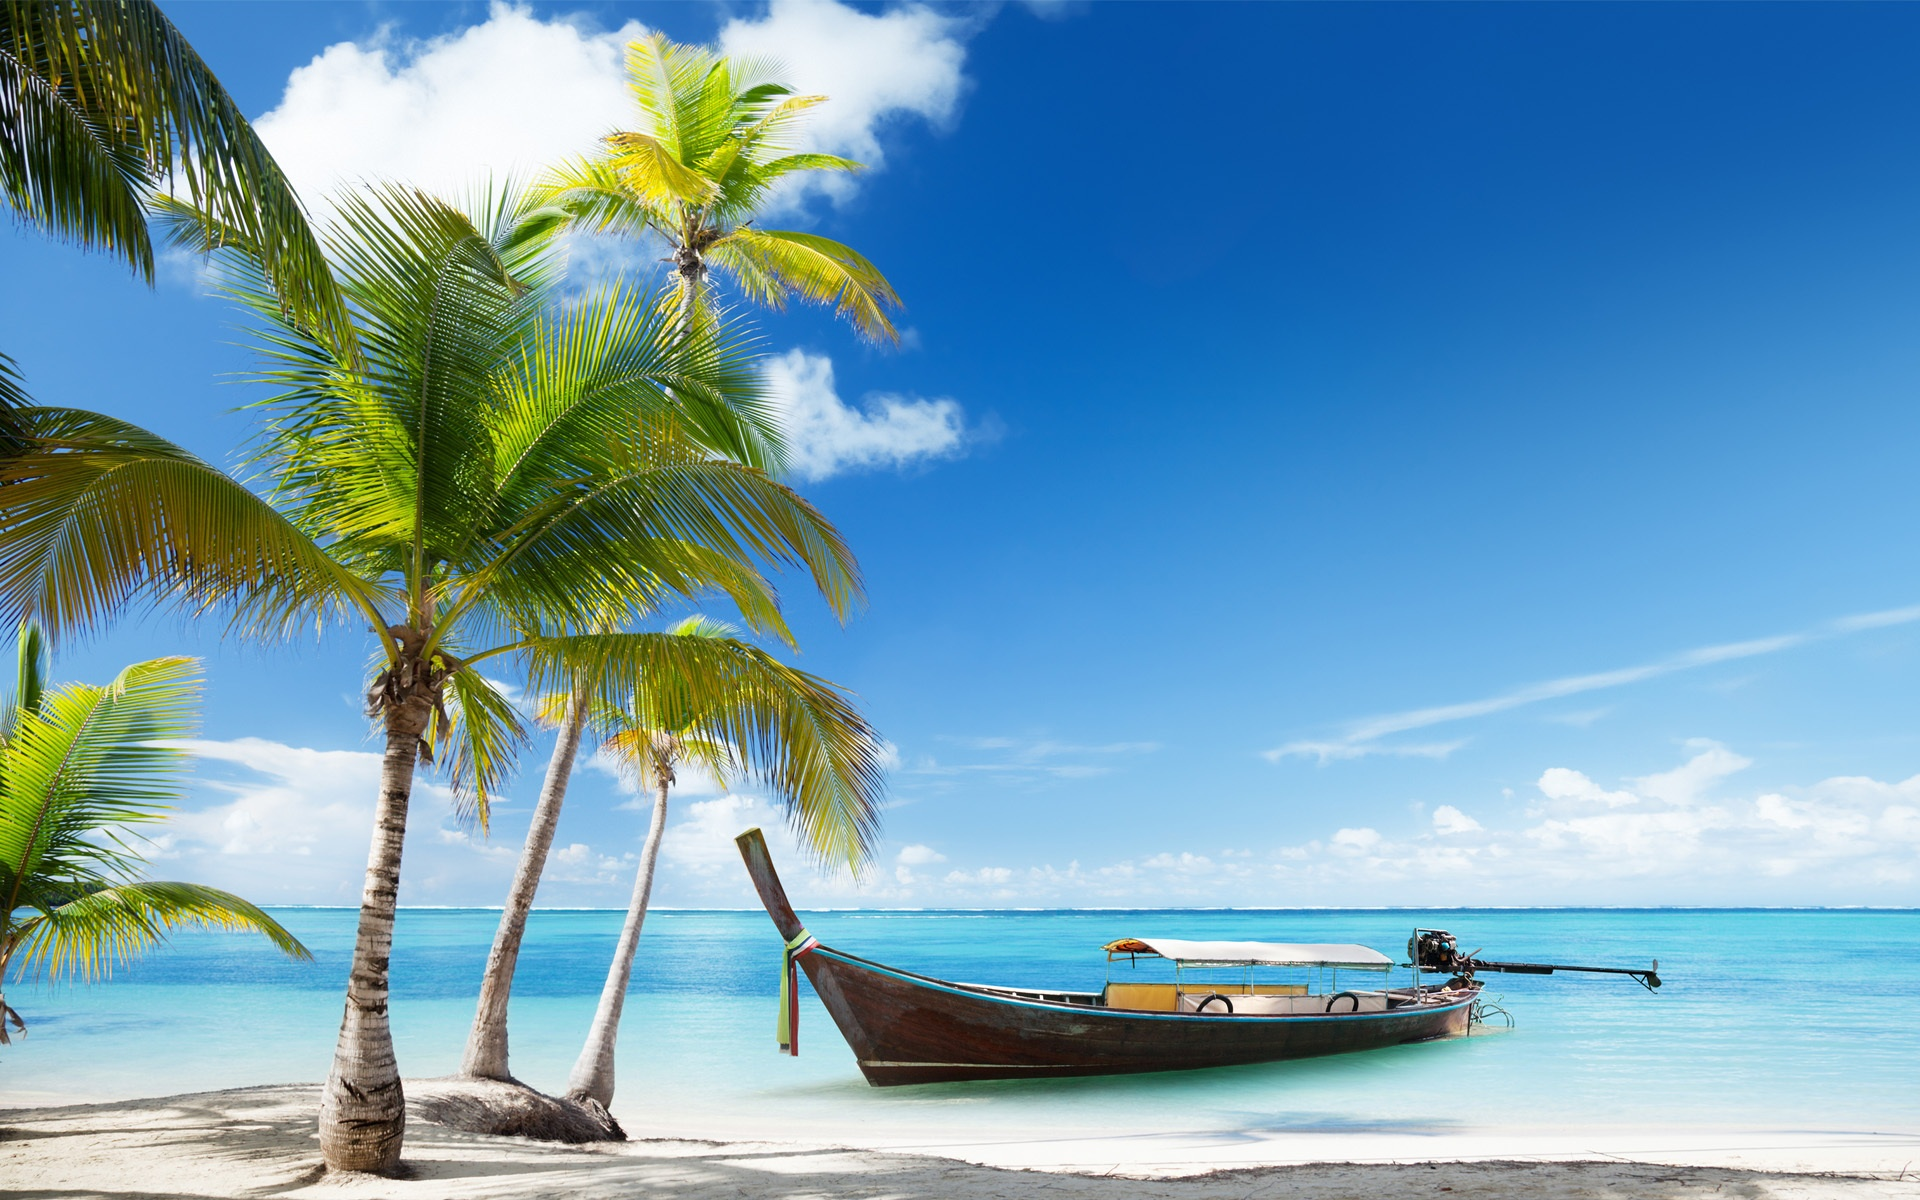 Hd Tropical Island Beach Paradise Wallpapers And Backgrounds: Wallpaper Palm Trees, Boat, Tropical Sea, Beach Sand